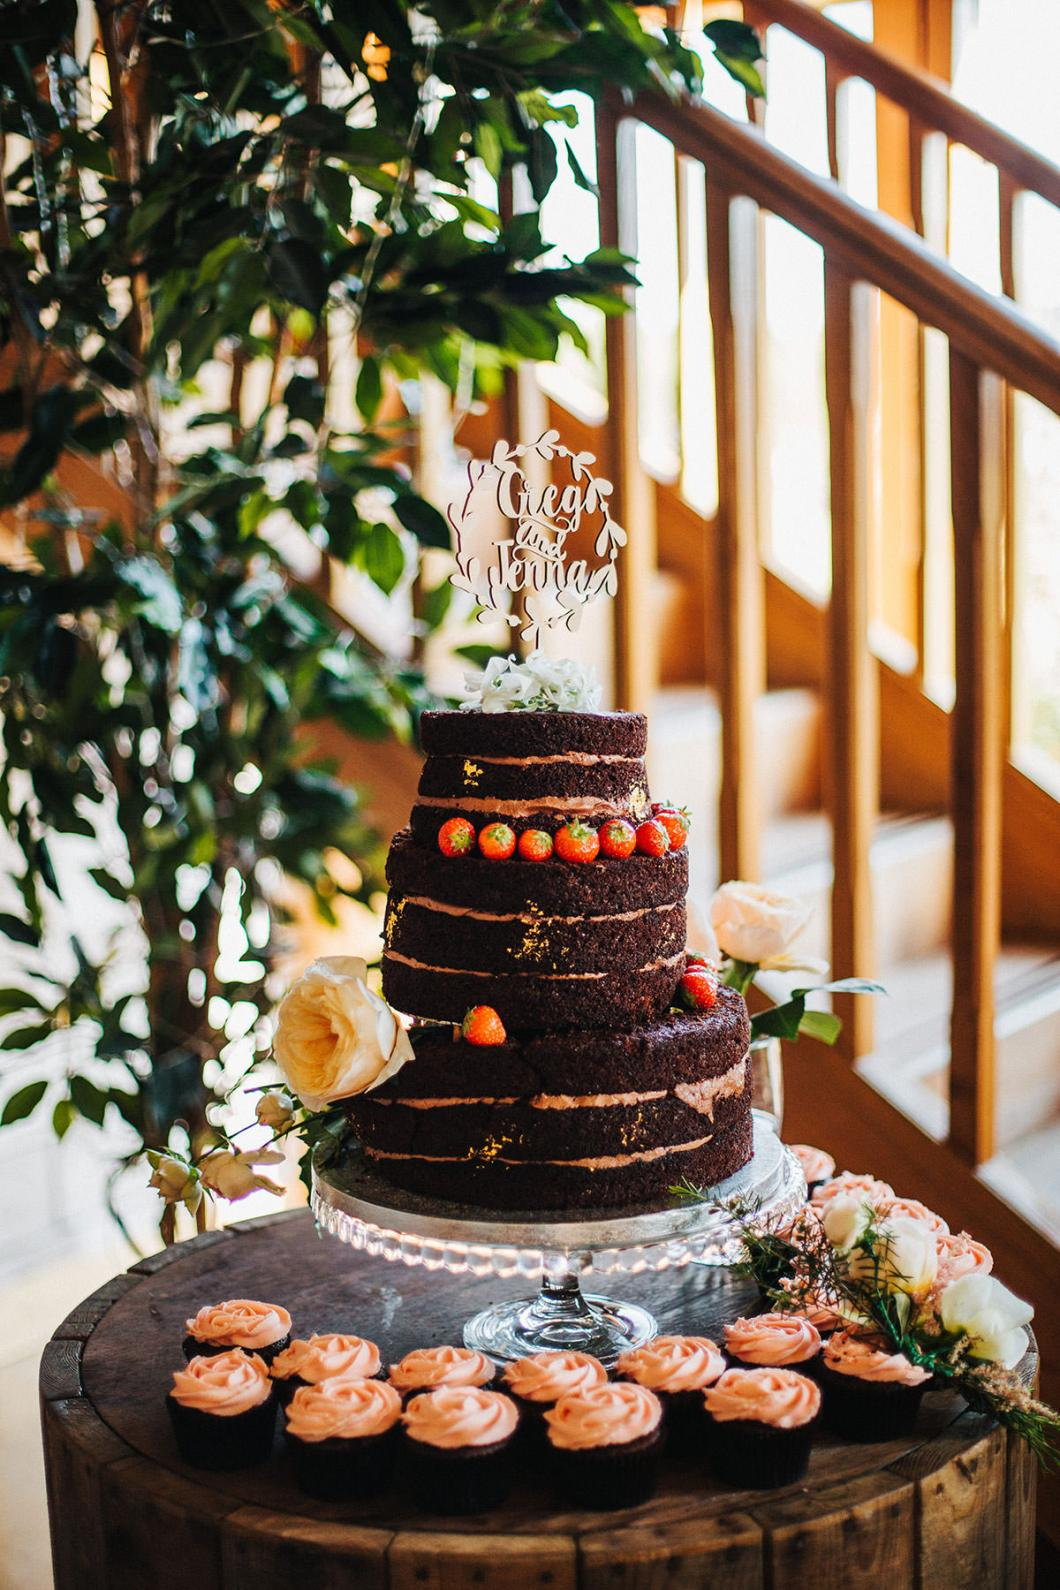 Becky's Bakes chocolate naked wedding cake